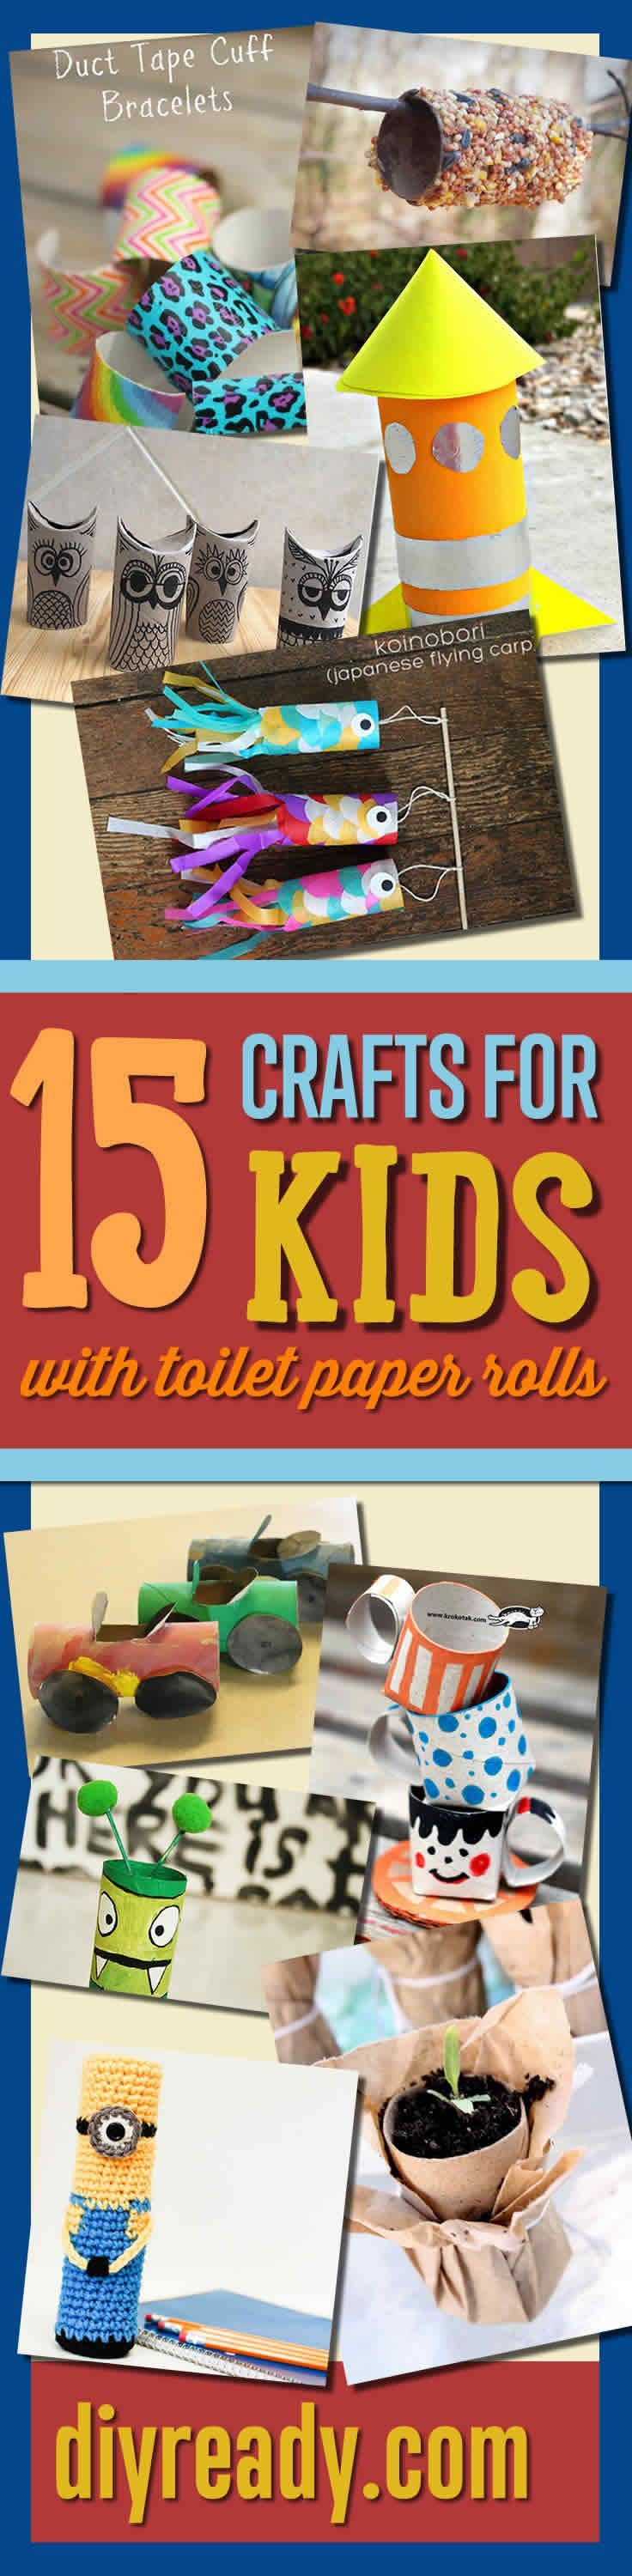 Best DIY Crafts for Kids To Make at Home and DIY Kid Craft Ideas http://diyready.com/crafts-for-kids-toilet-paper-roll-craft-projects/